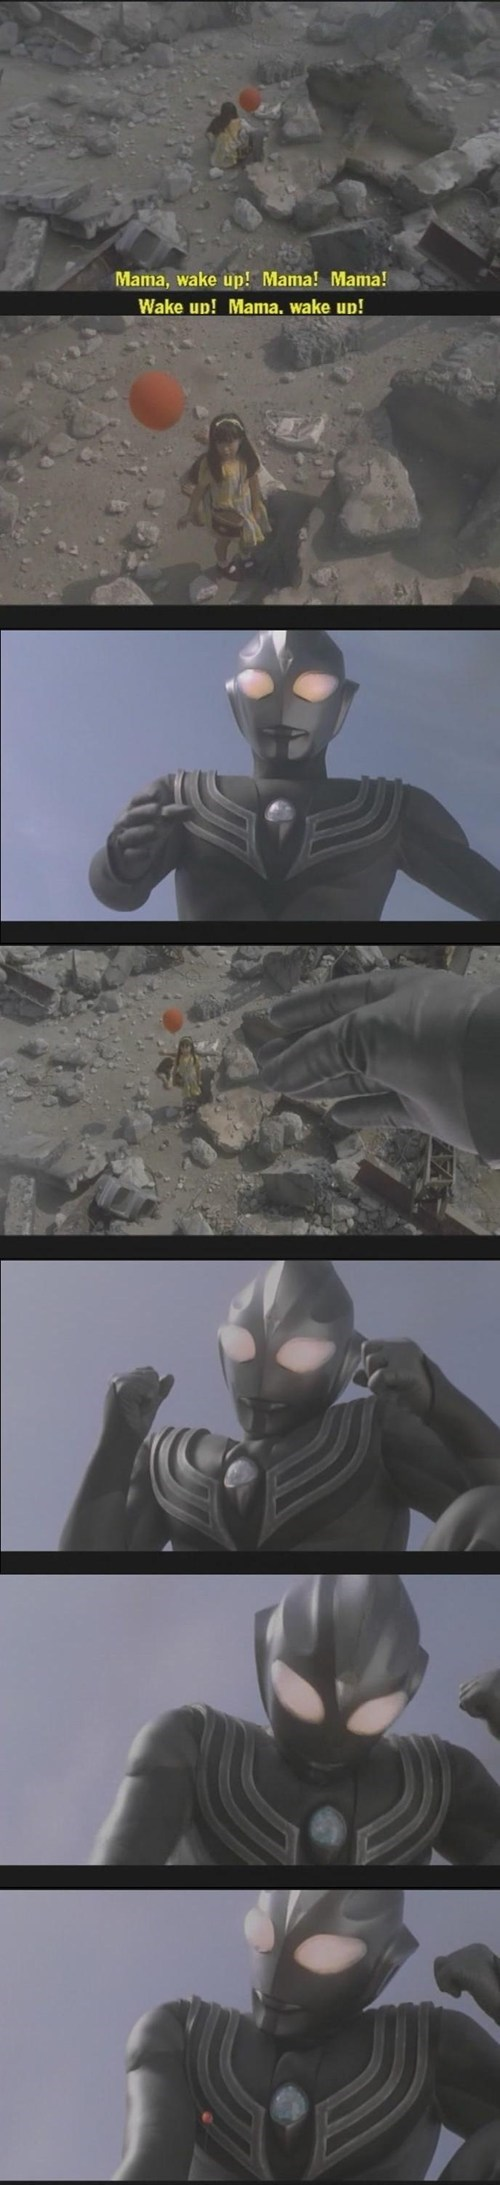 Did Ultraman Just Punch a Child?